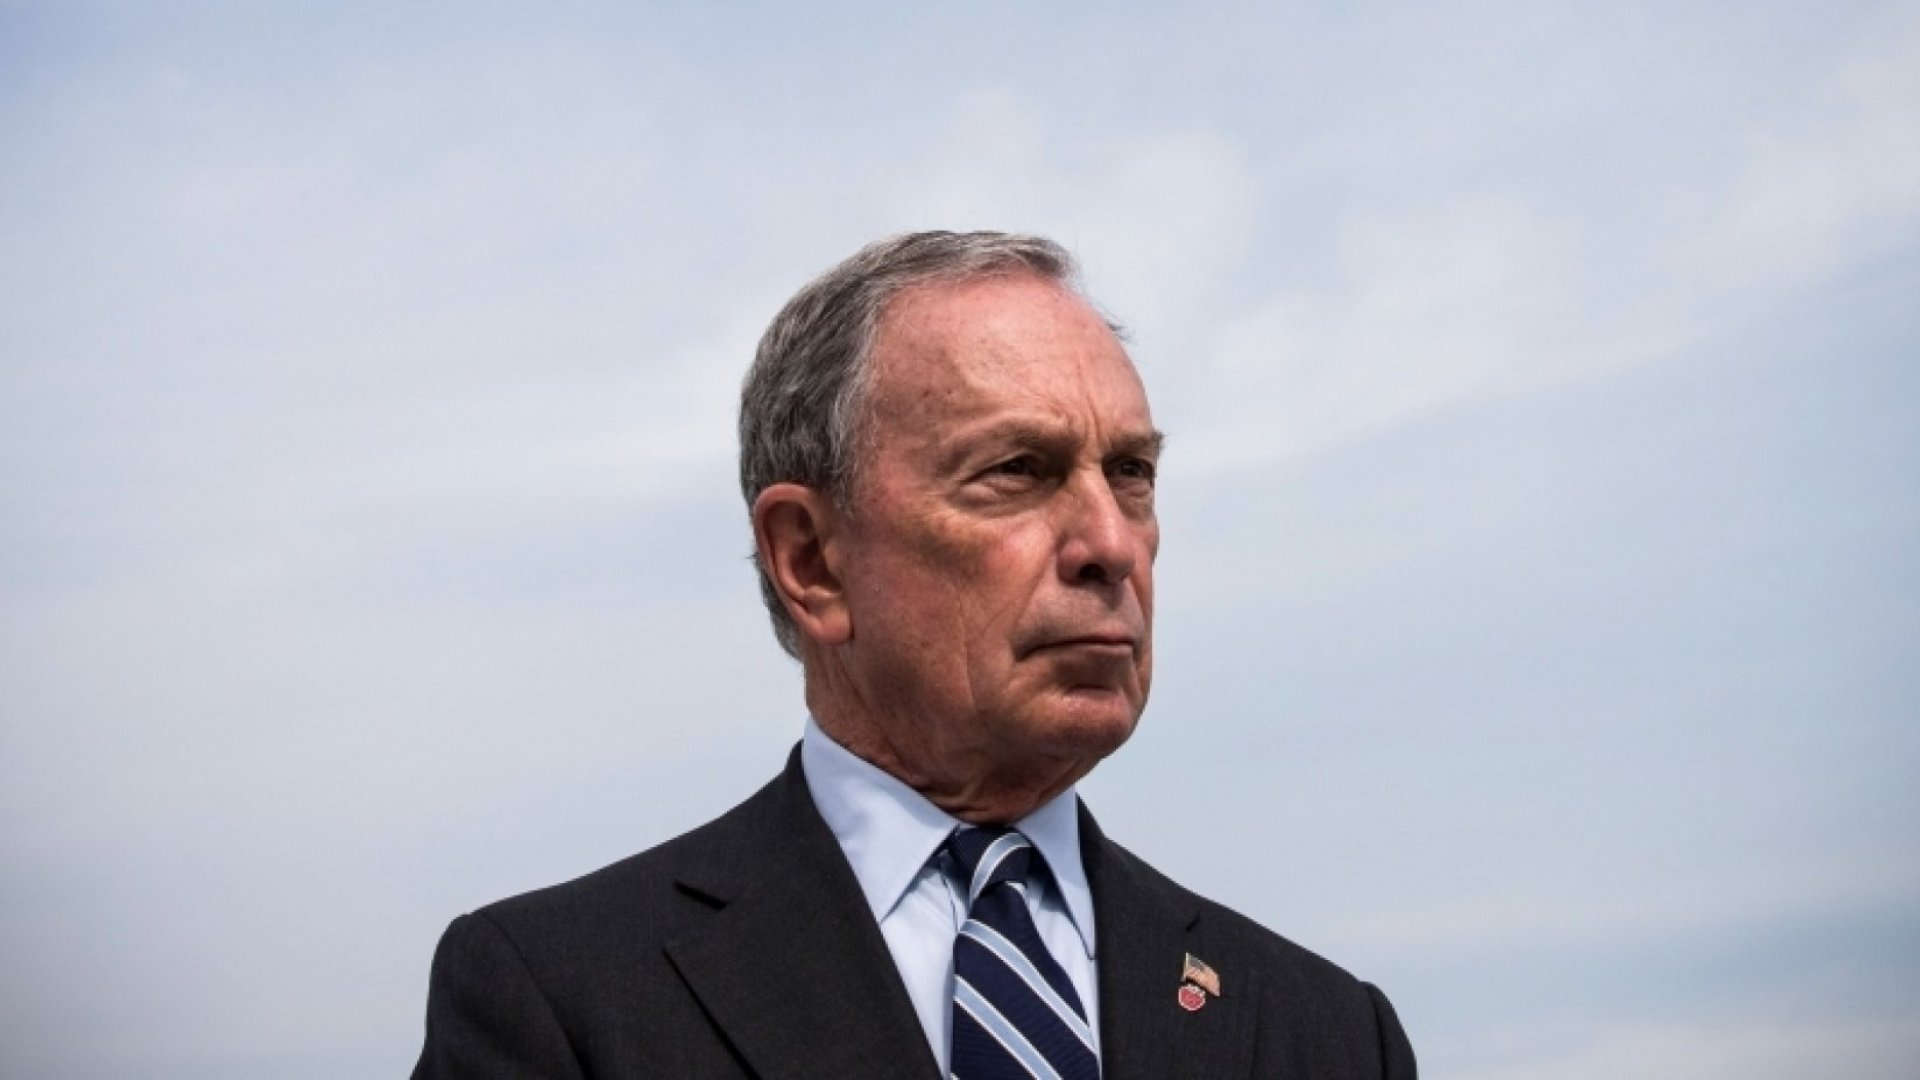 15 Essential Quotes From Billionaire Mike Bloomberg